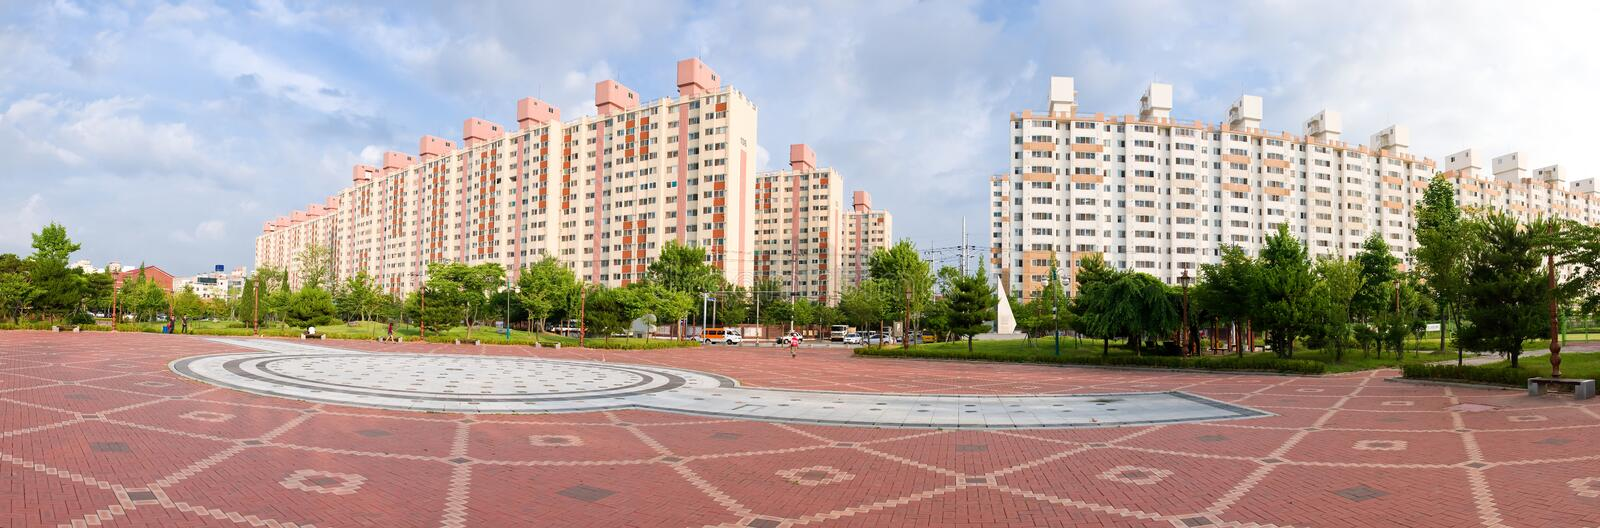 Download South Korea architecture stock photo. Image of homes - 15393728